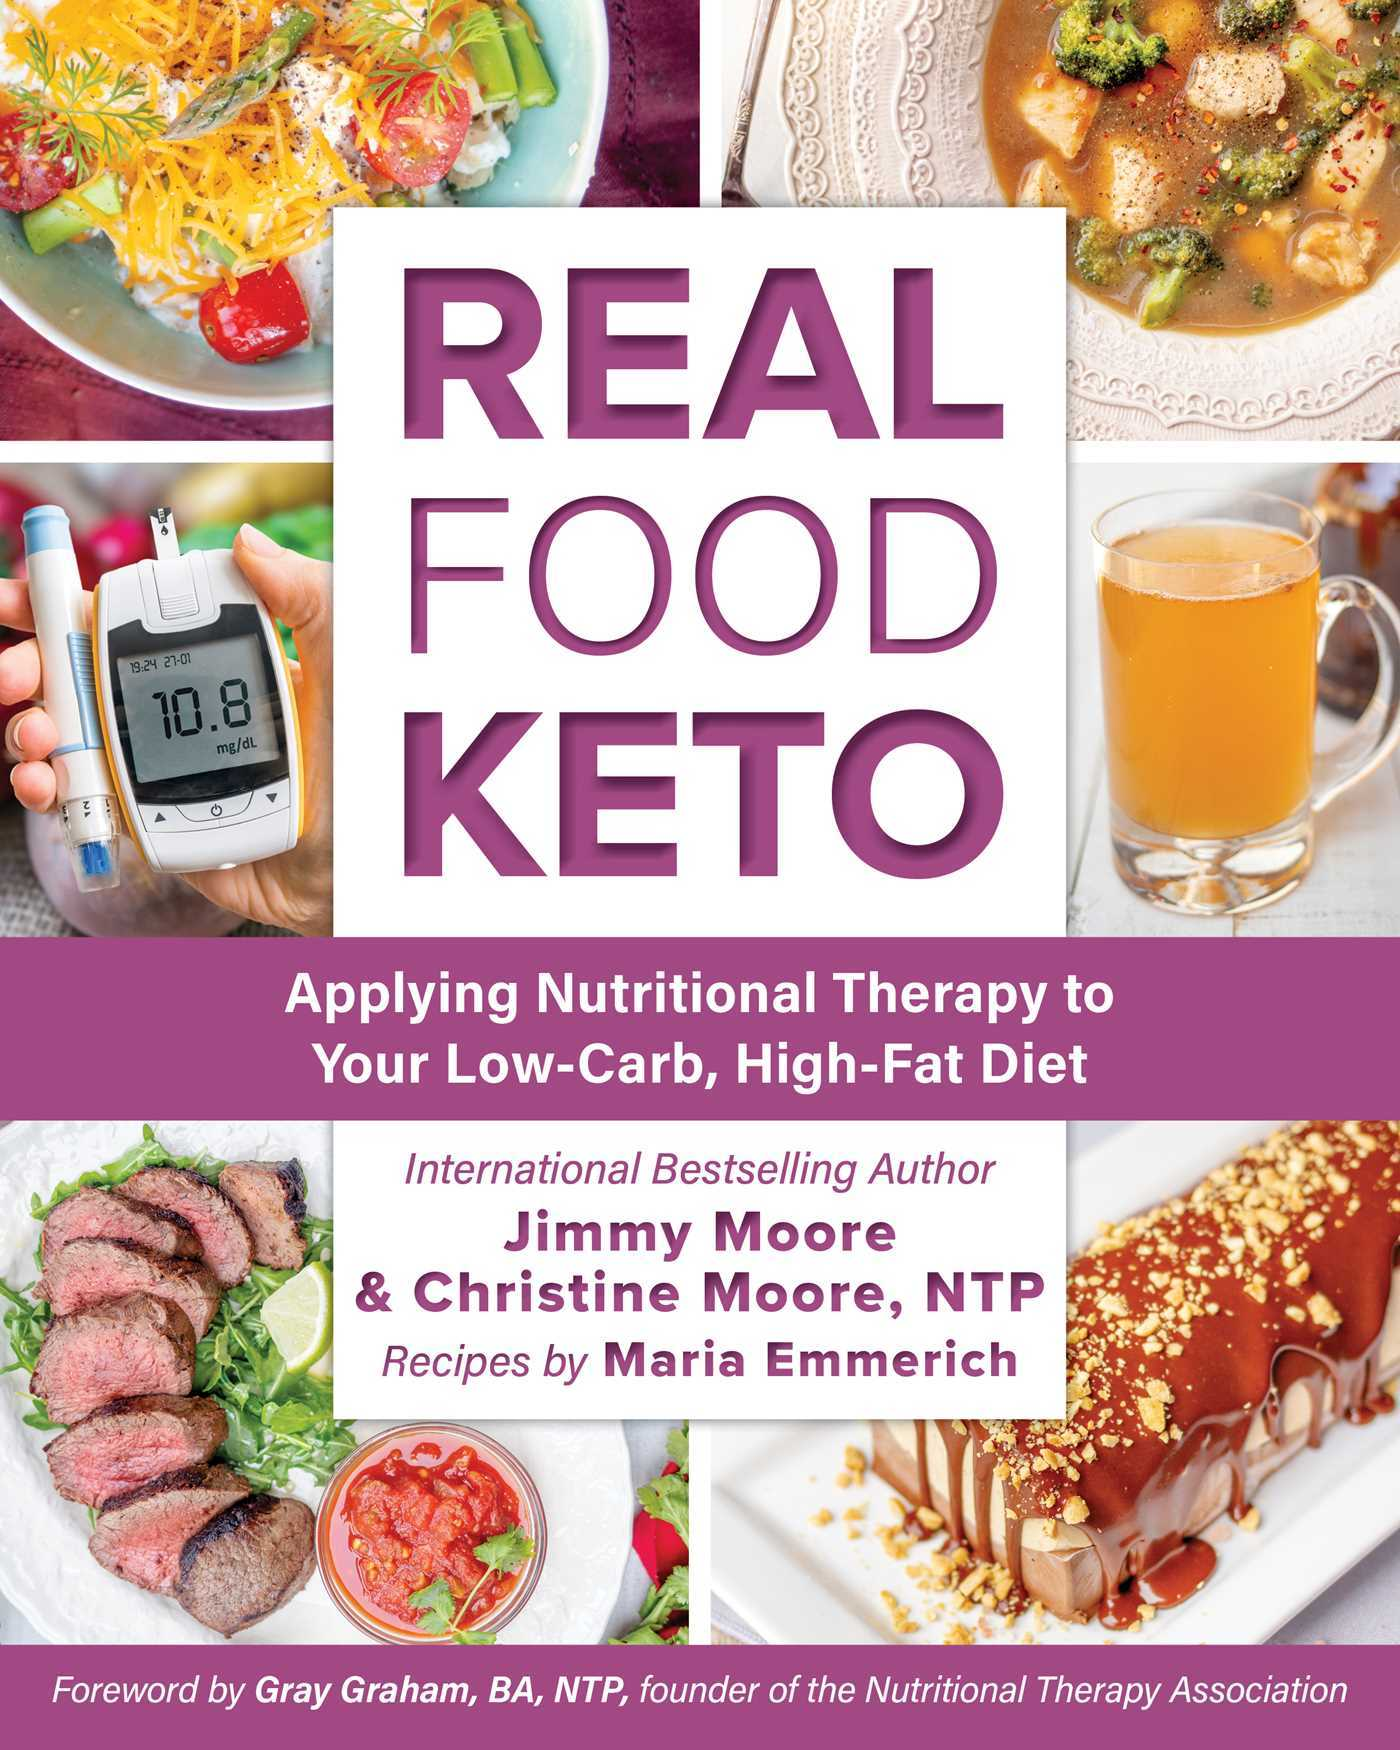 Real Food Keto Applying Nutritional Therapy to Your Low-Carb High-Fat Diet